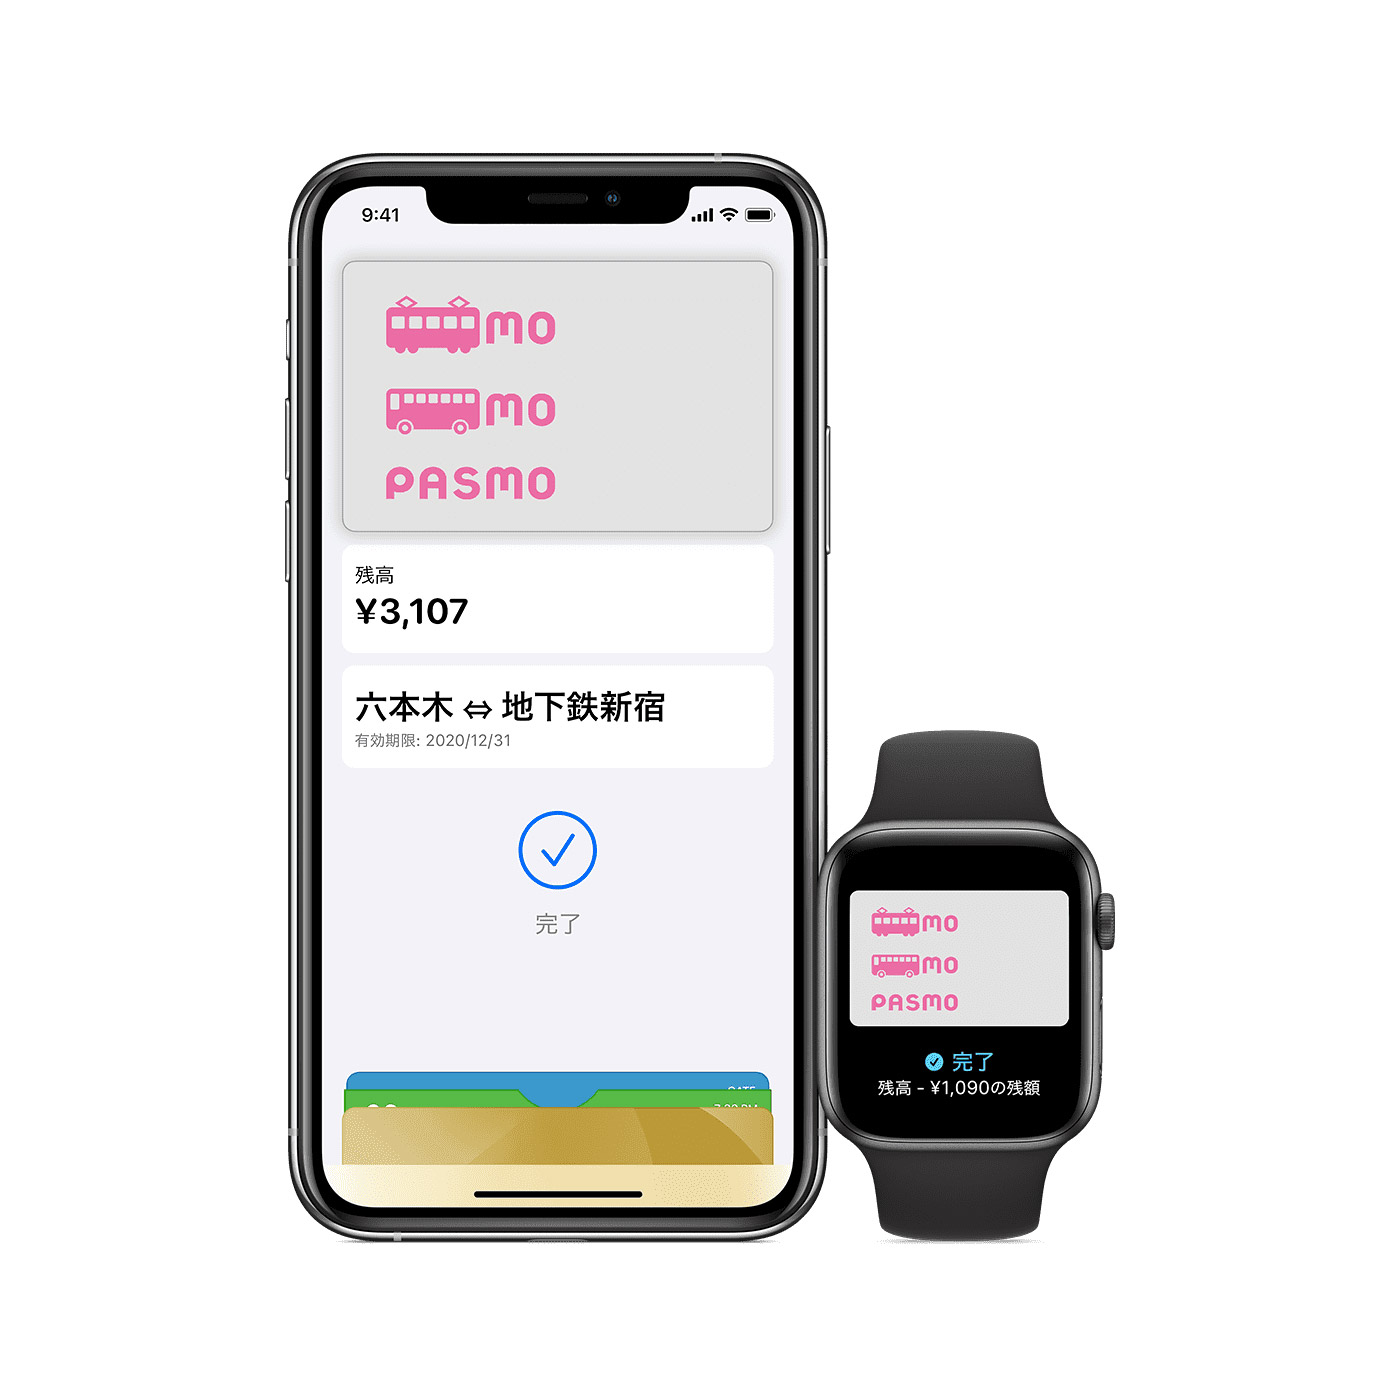 Apple Payで『PASMO』が利用可能に